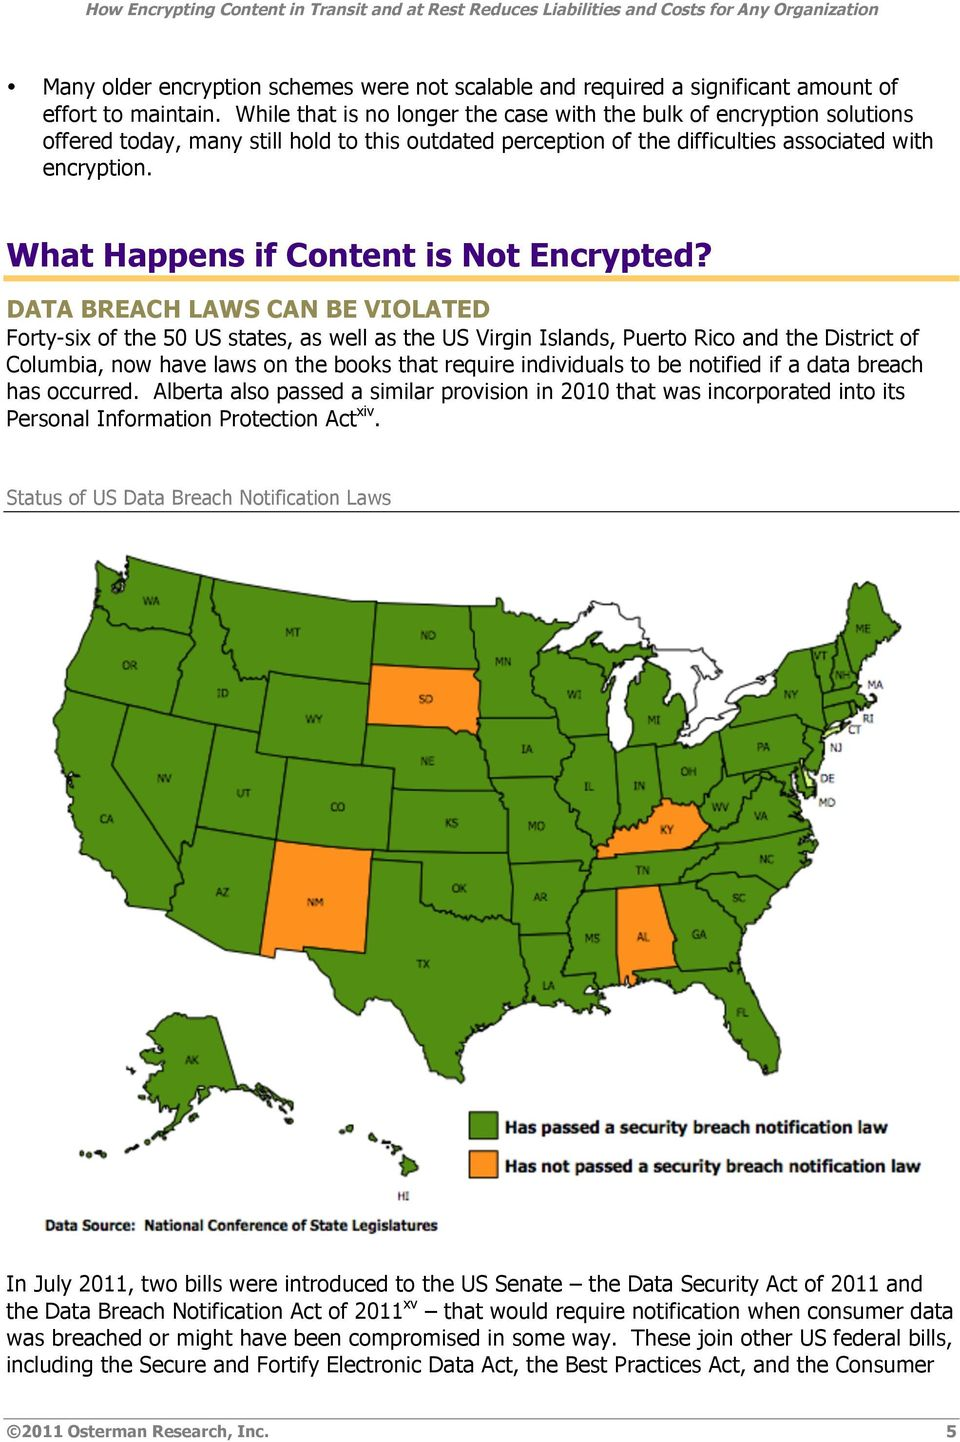 What Happens if Cntent is Nt Encrypted?